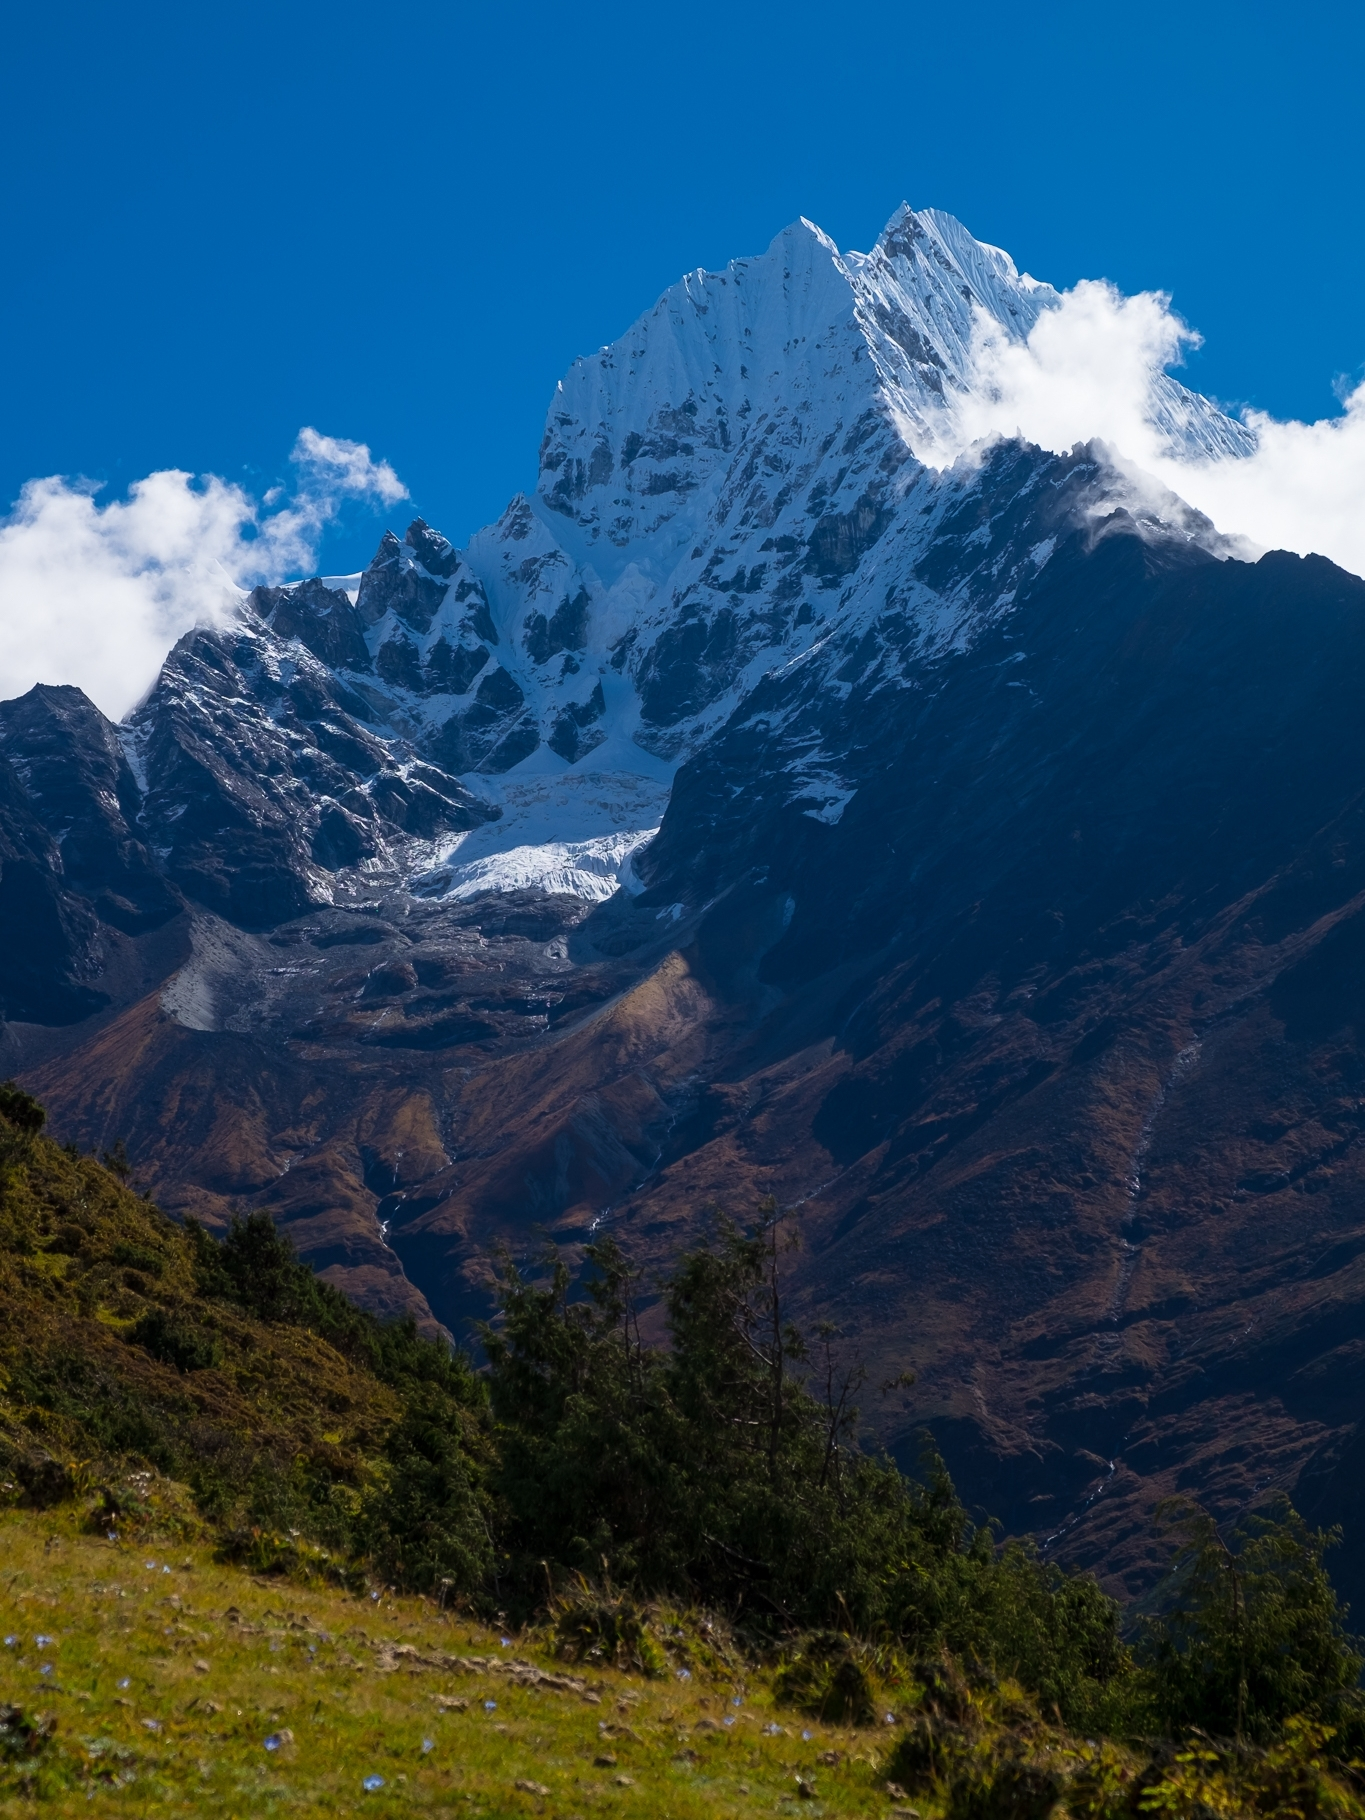 The dark side of Ama Dablam